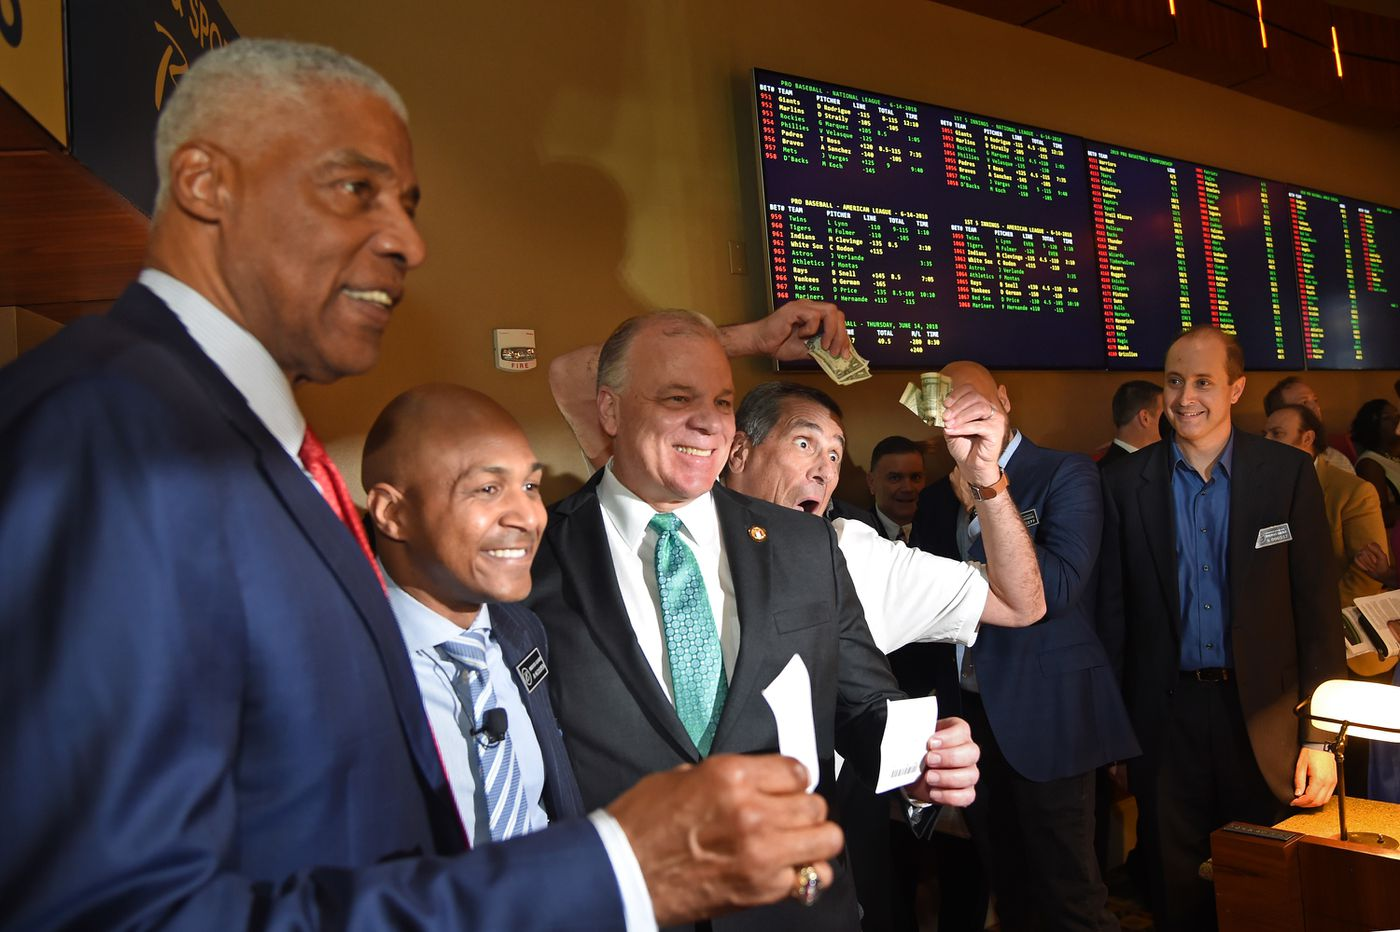 N.J. bookmakers report plunge in sports-betting revenue. That's good for bettors.